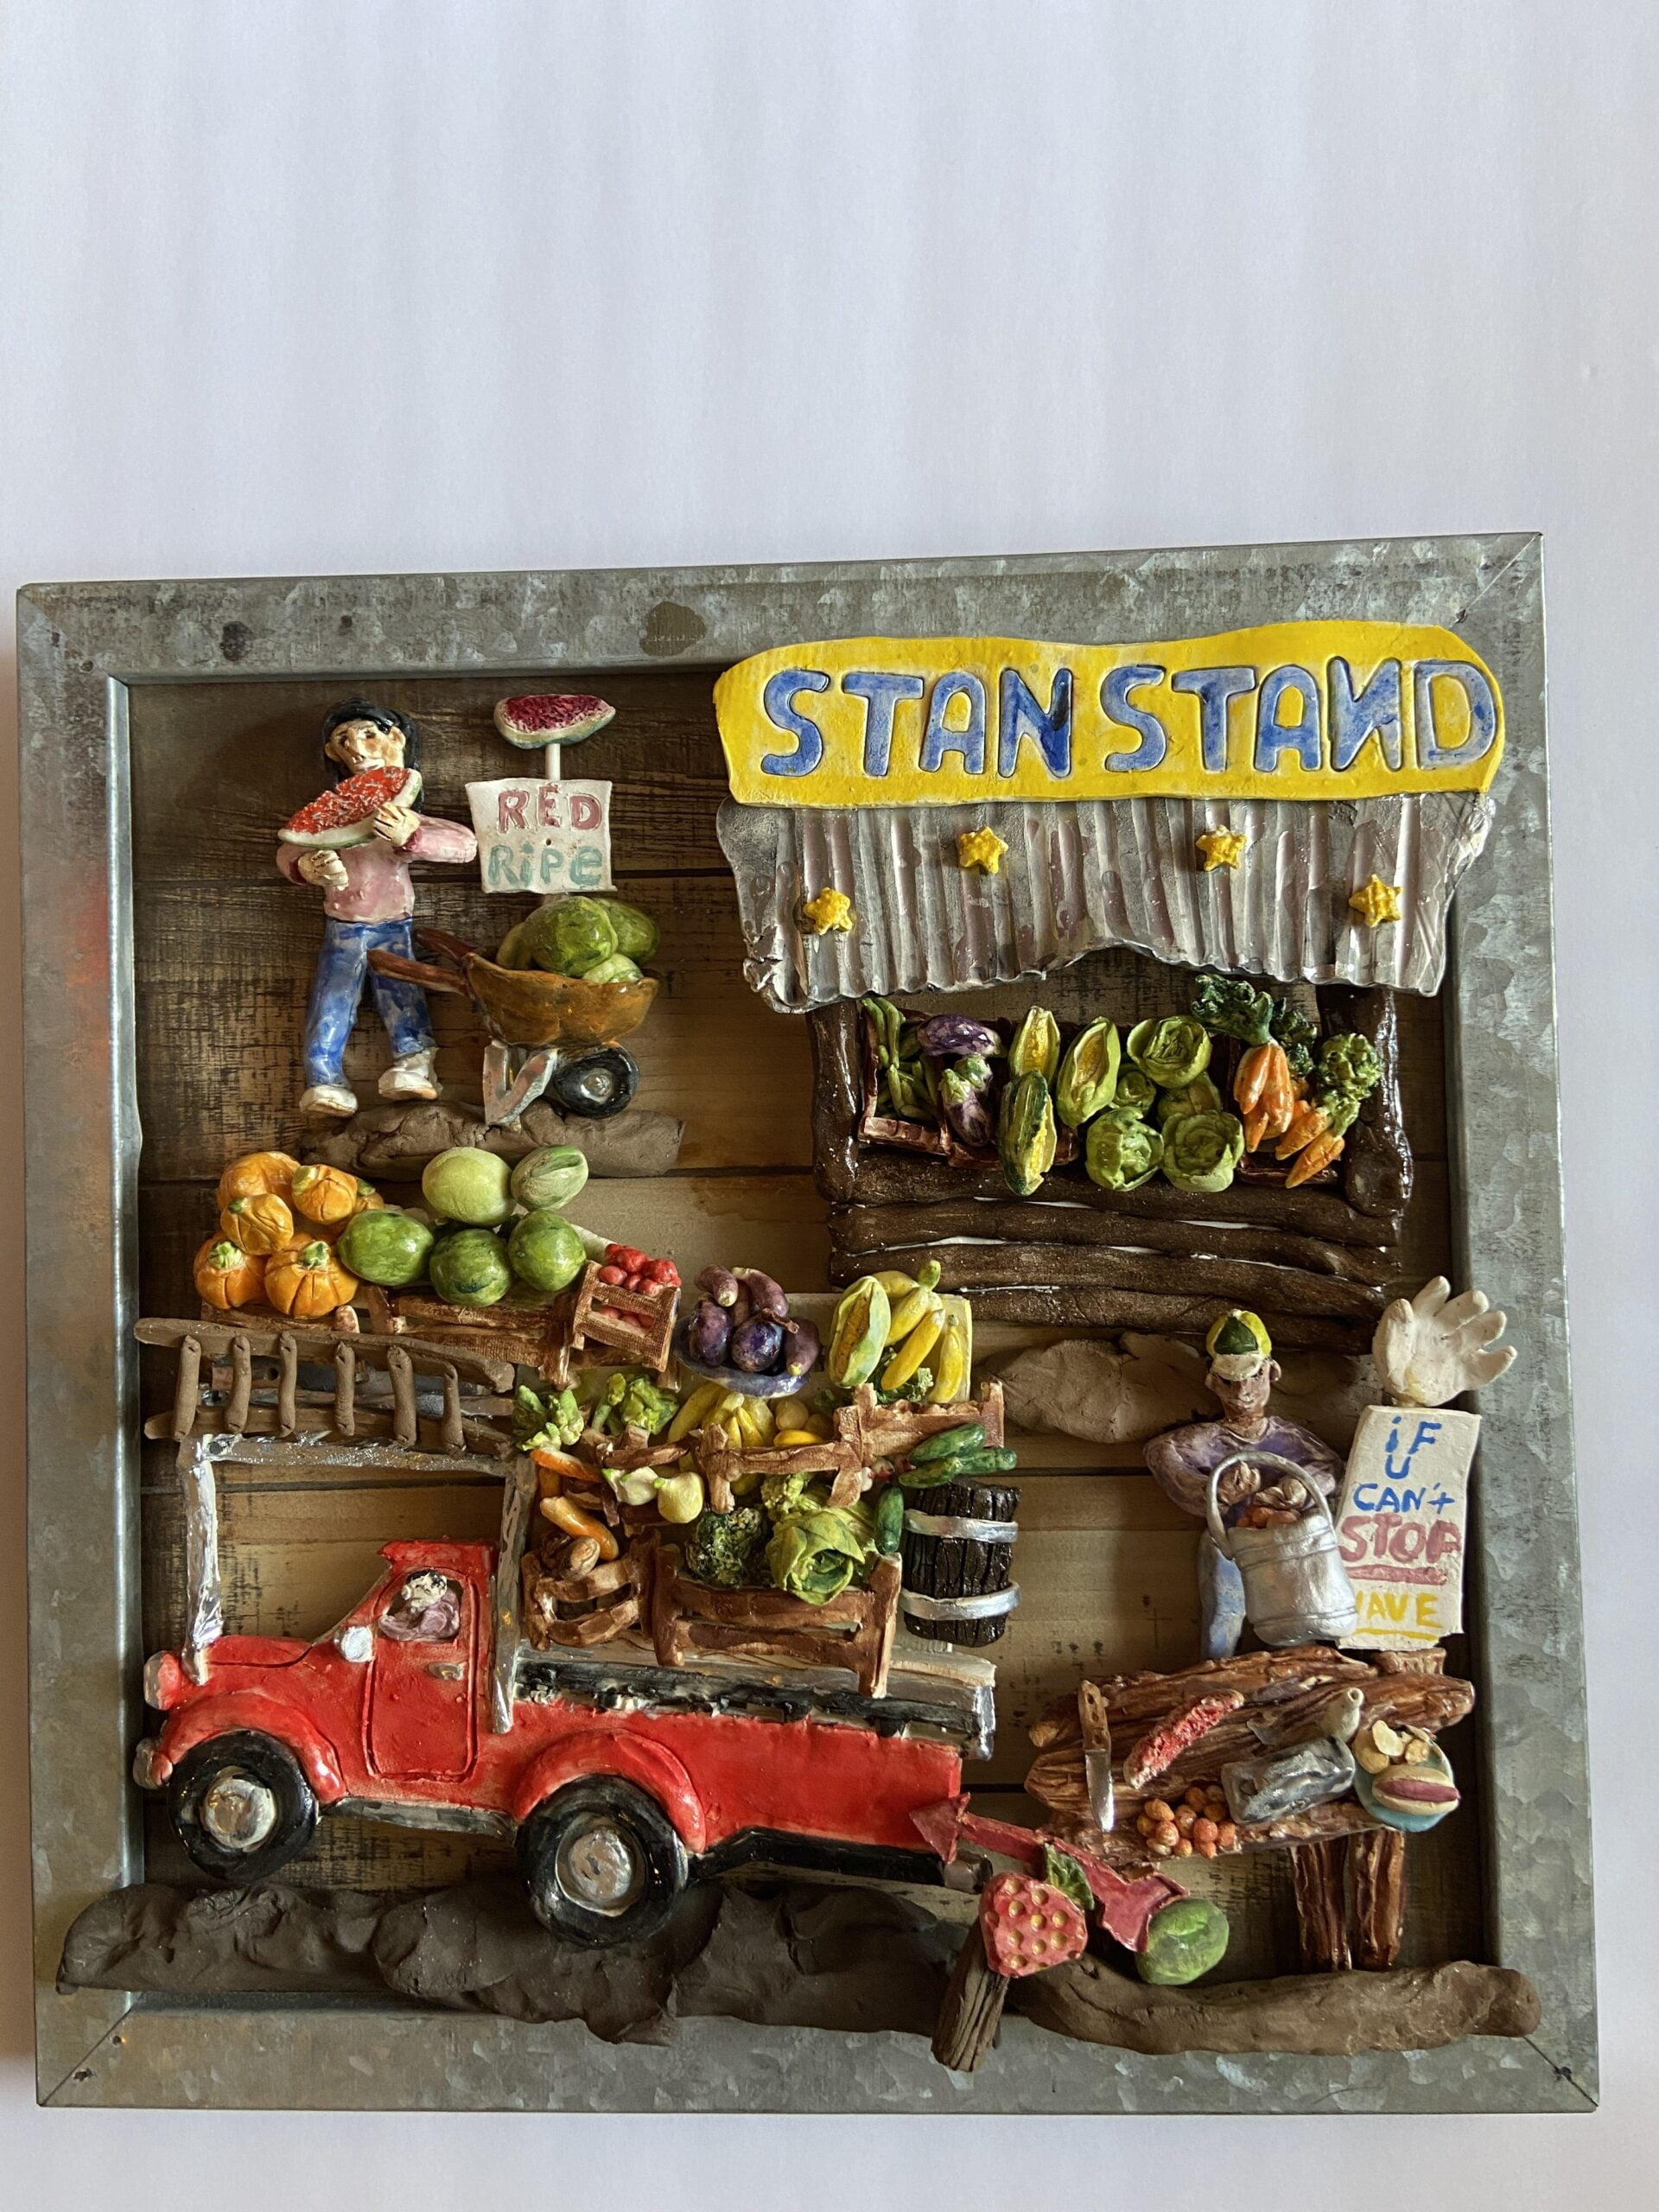 Stan's Stand